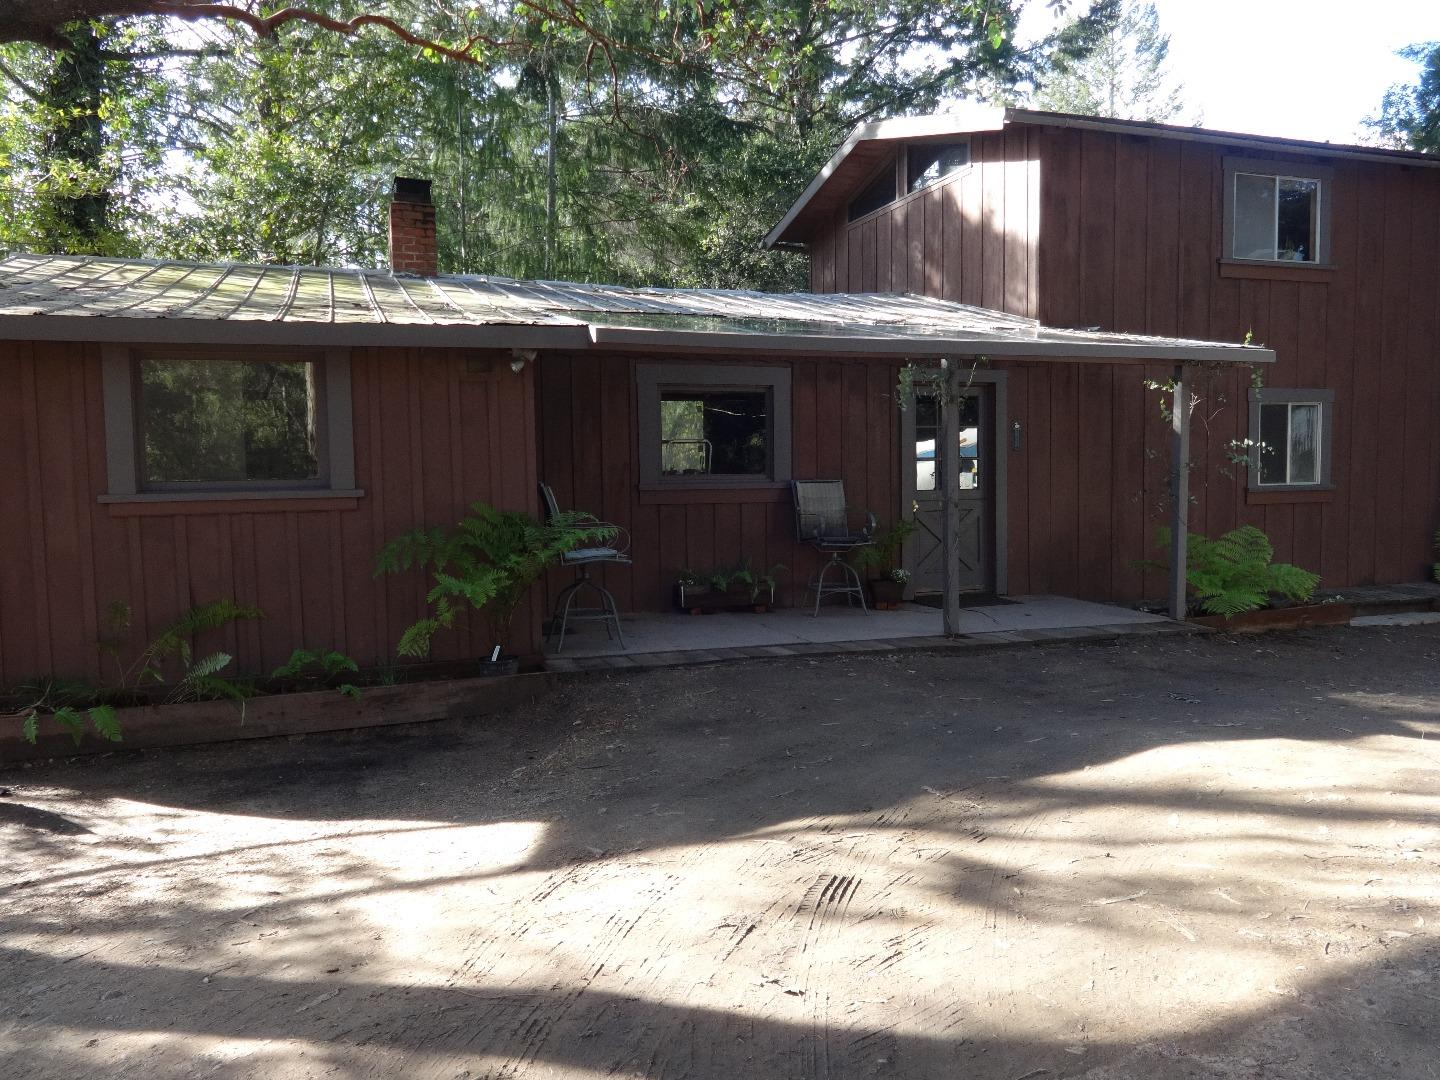 25765 Mountain Charlie Rd, Scotts Valley, CA